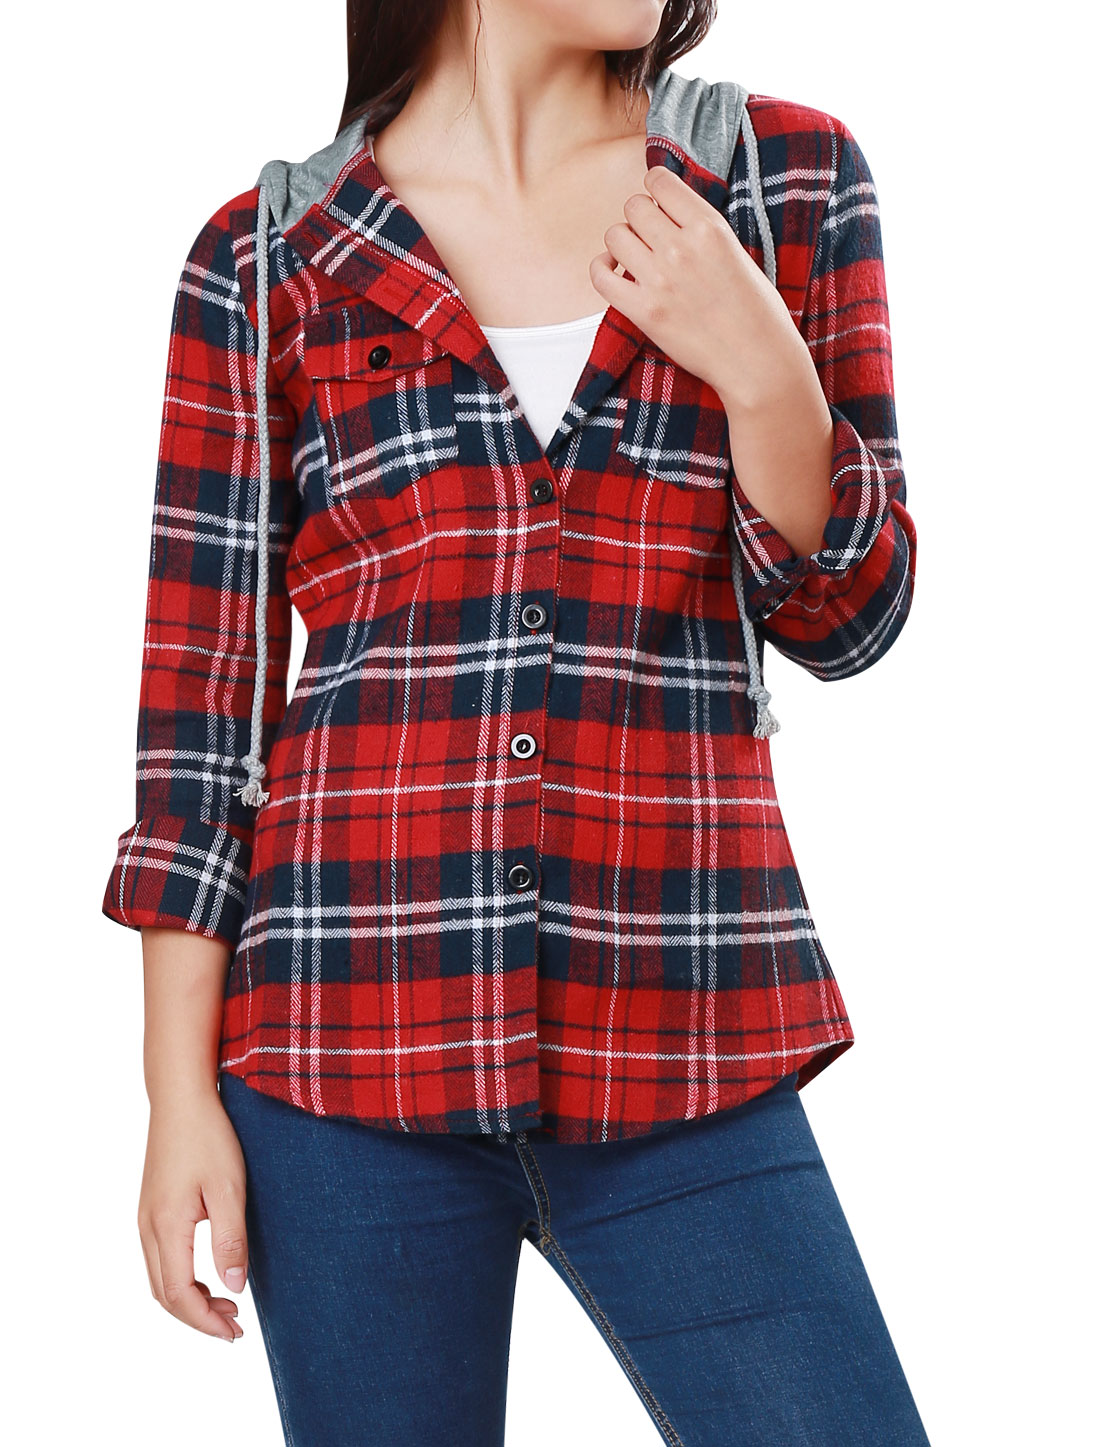 Women's Drawstring Hoodie Button Up Plaid Shirt Red (Size M / 8)